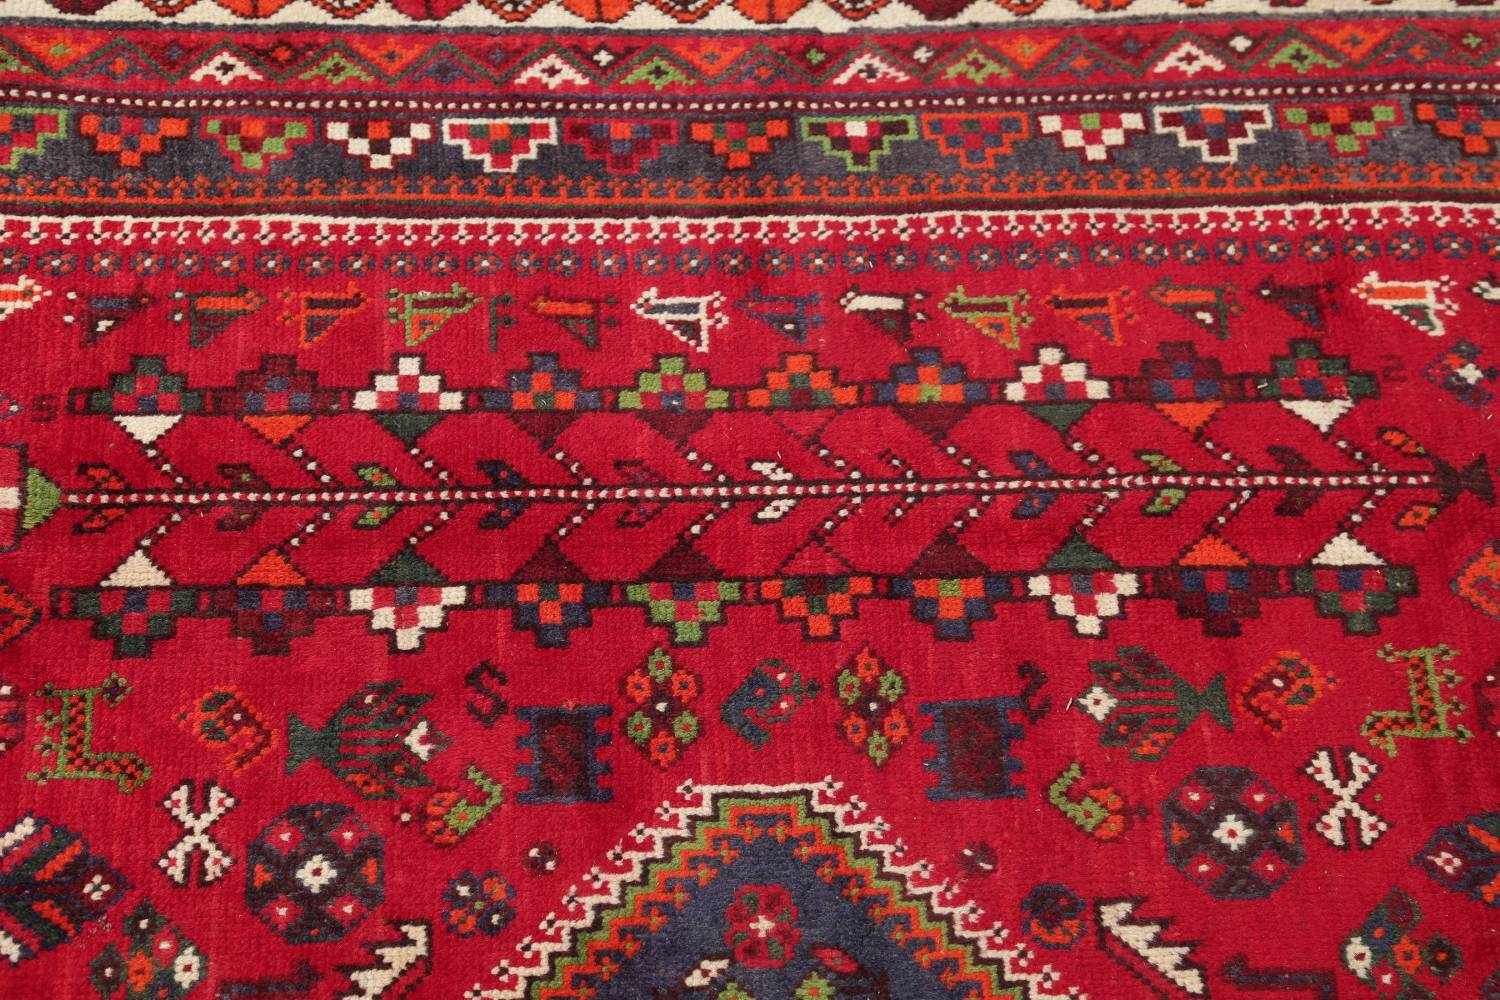 One-of-a-Kind Antique Tribal Shiraz Persian Hand-Knotted 7x10 Wool Area Rug image 16